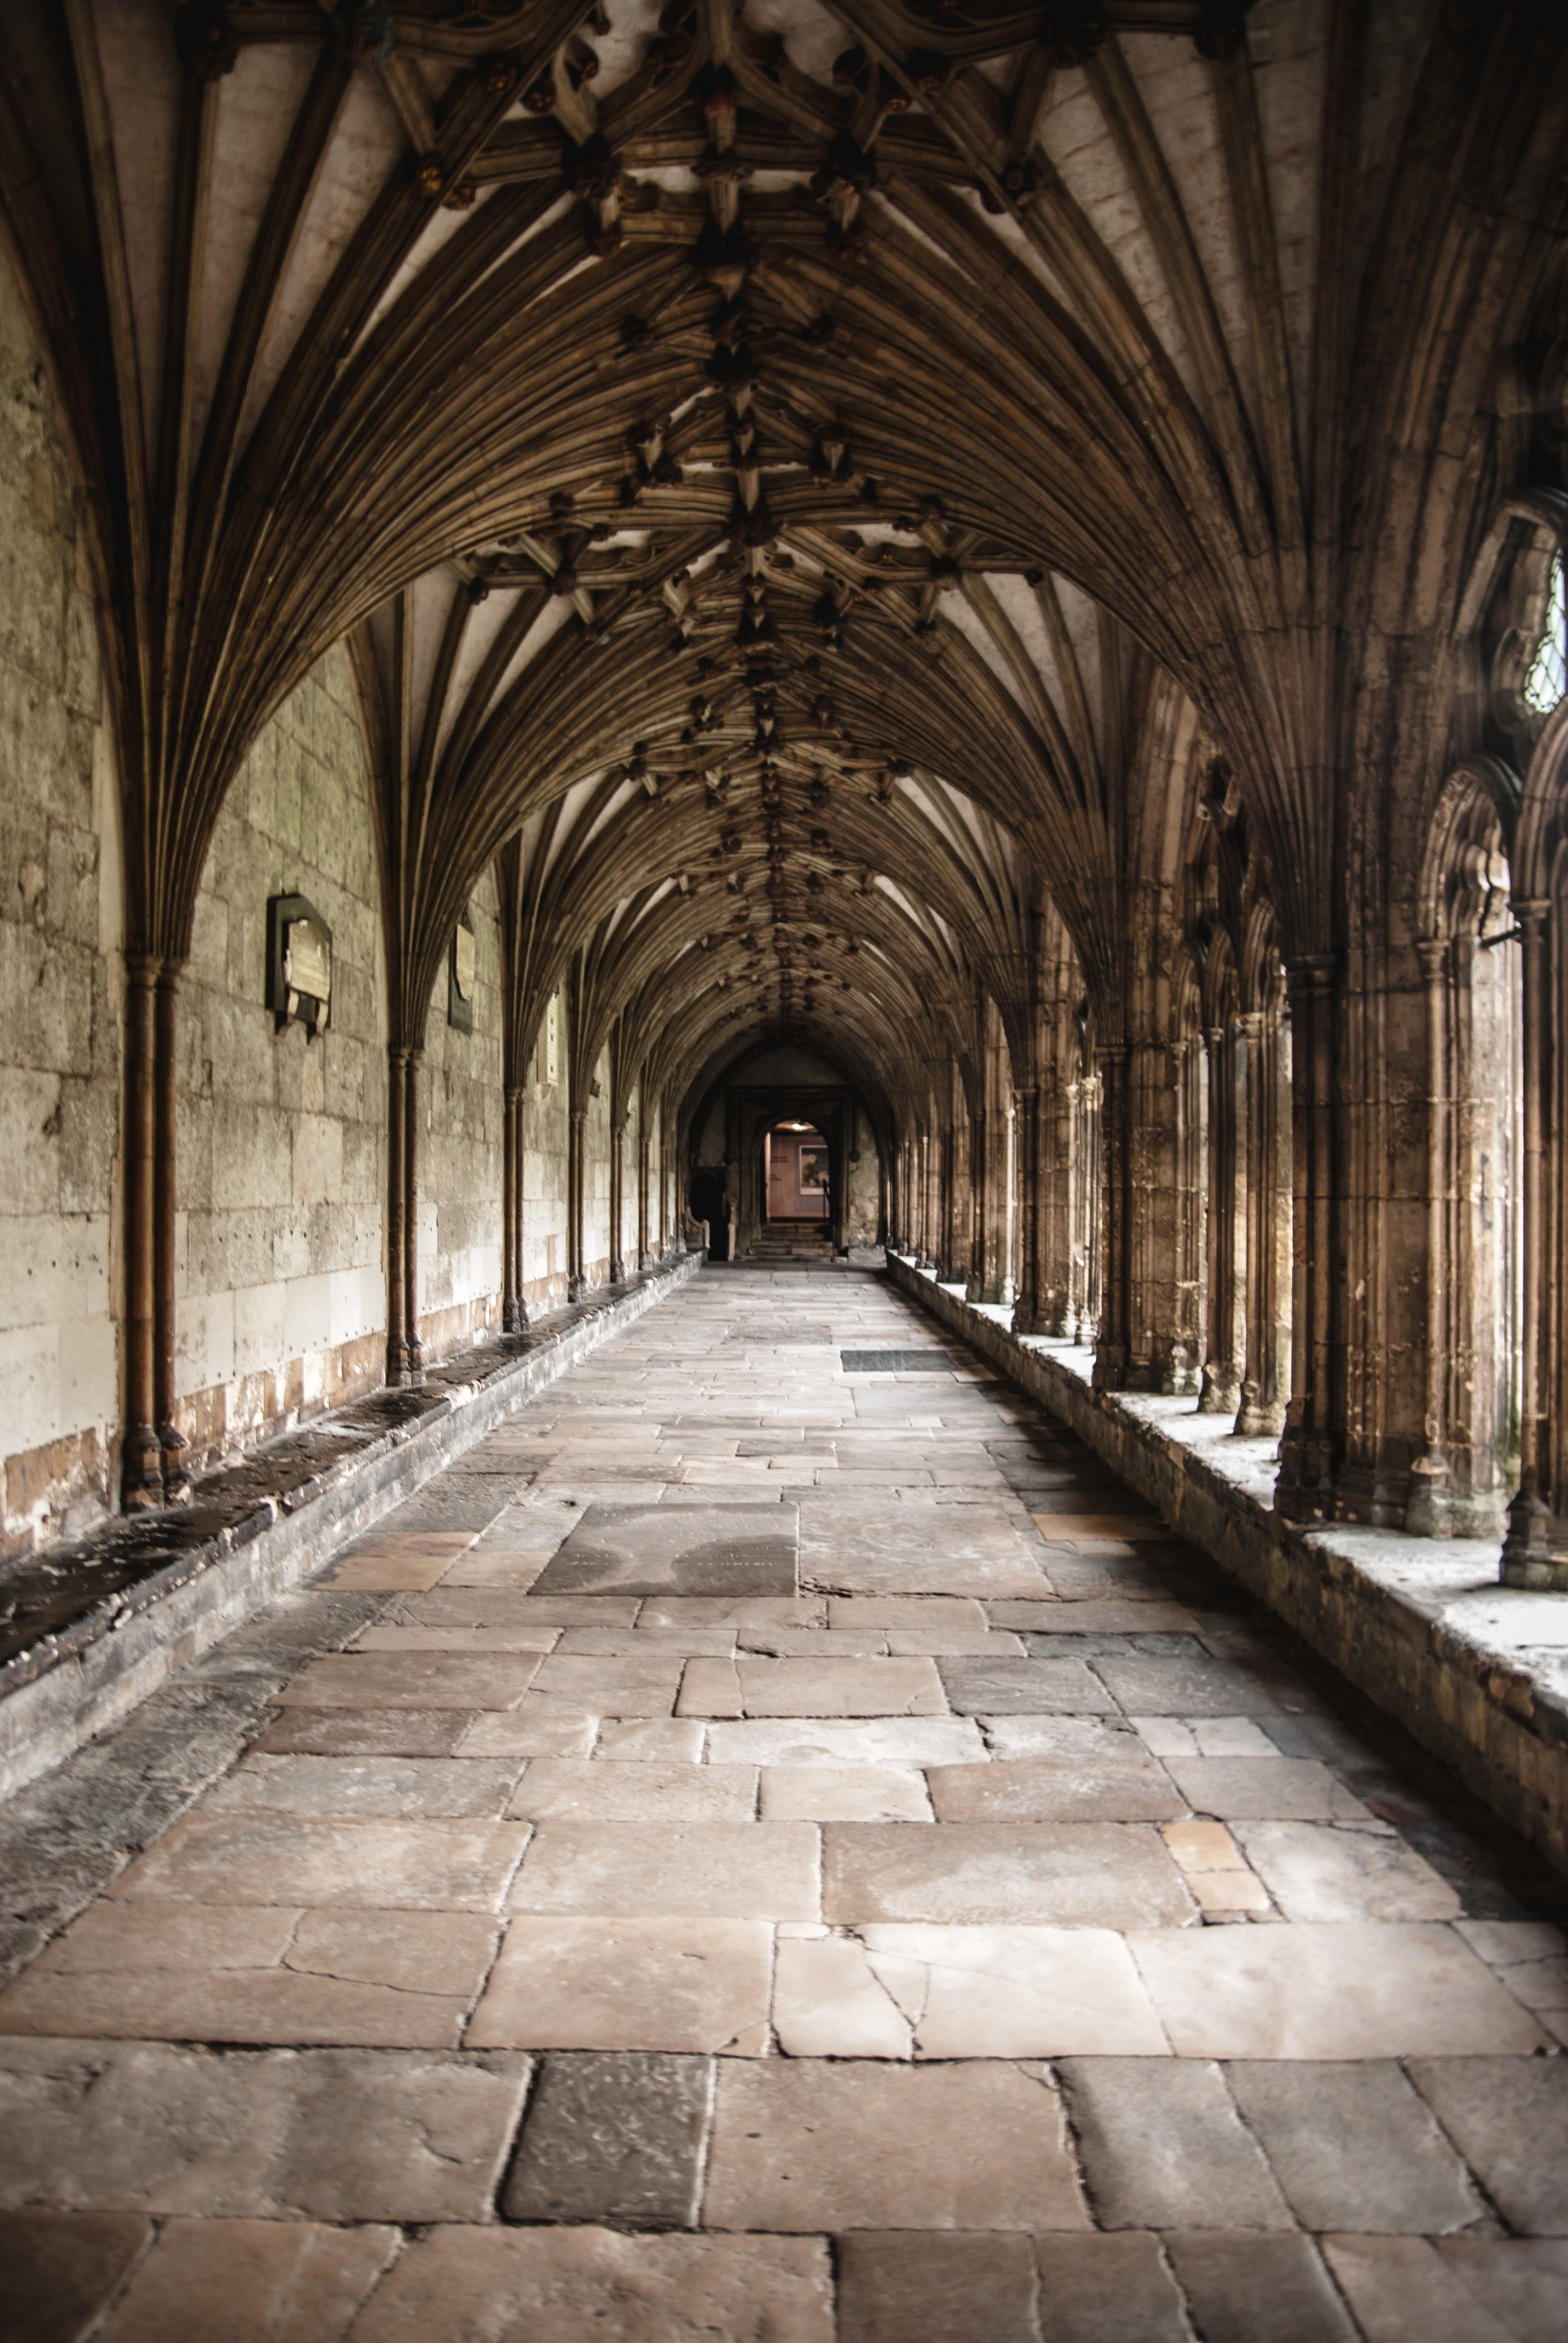 The monk led the stranger through a set of winding corridors in the monastery. | Photo: Pexels/Samuel Wölfl